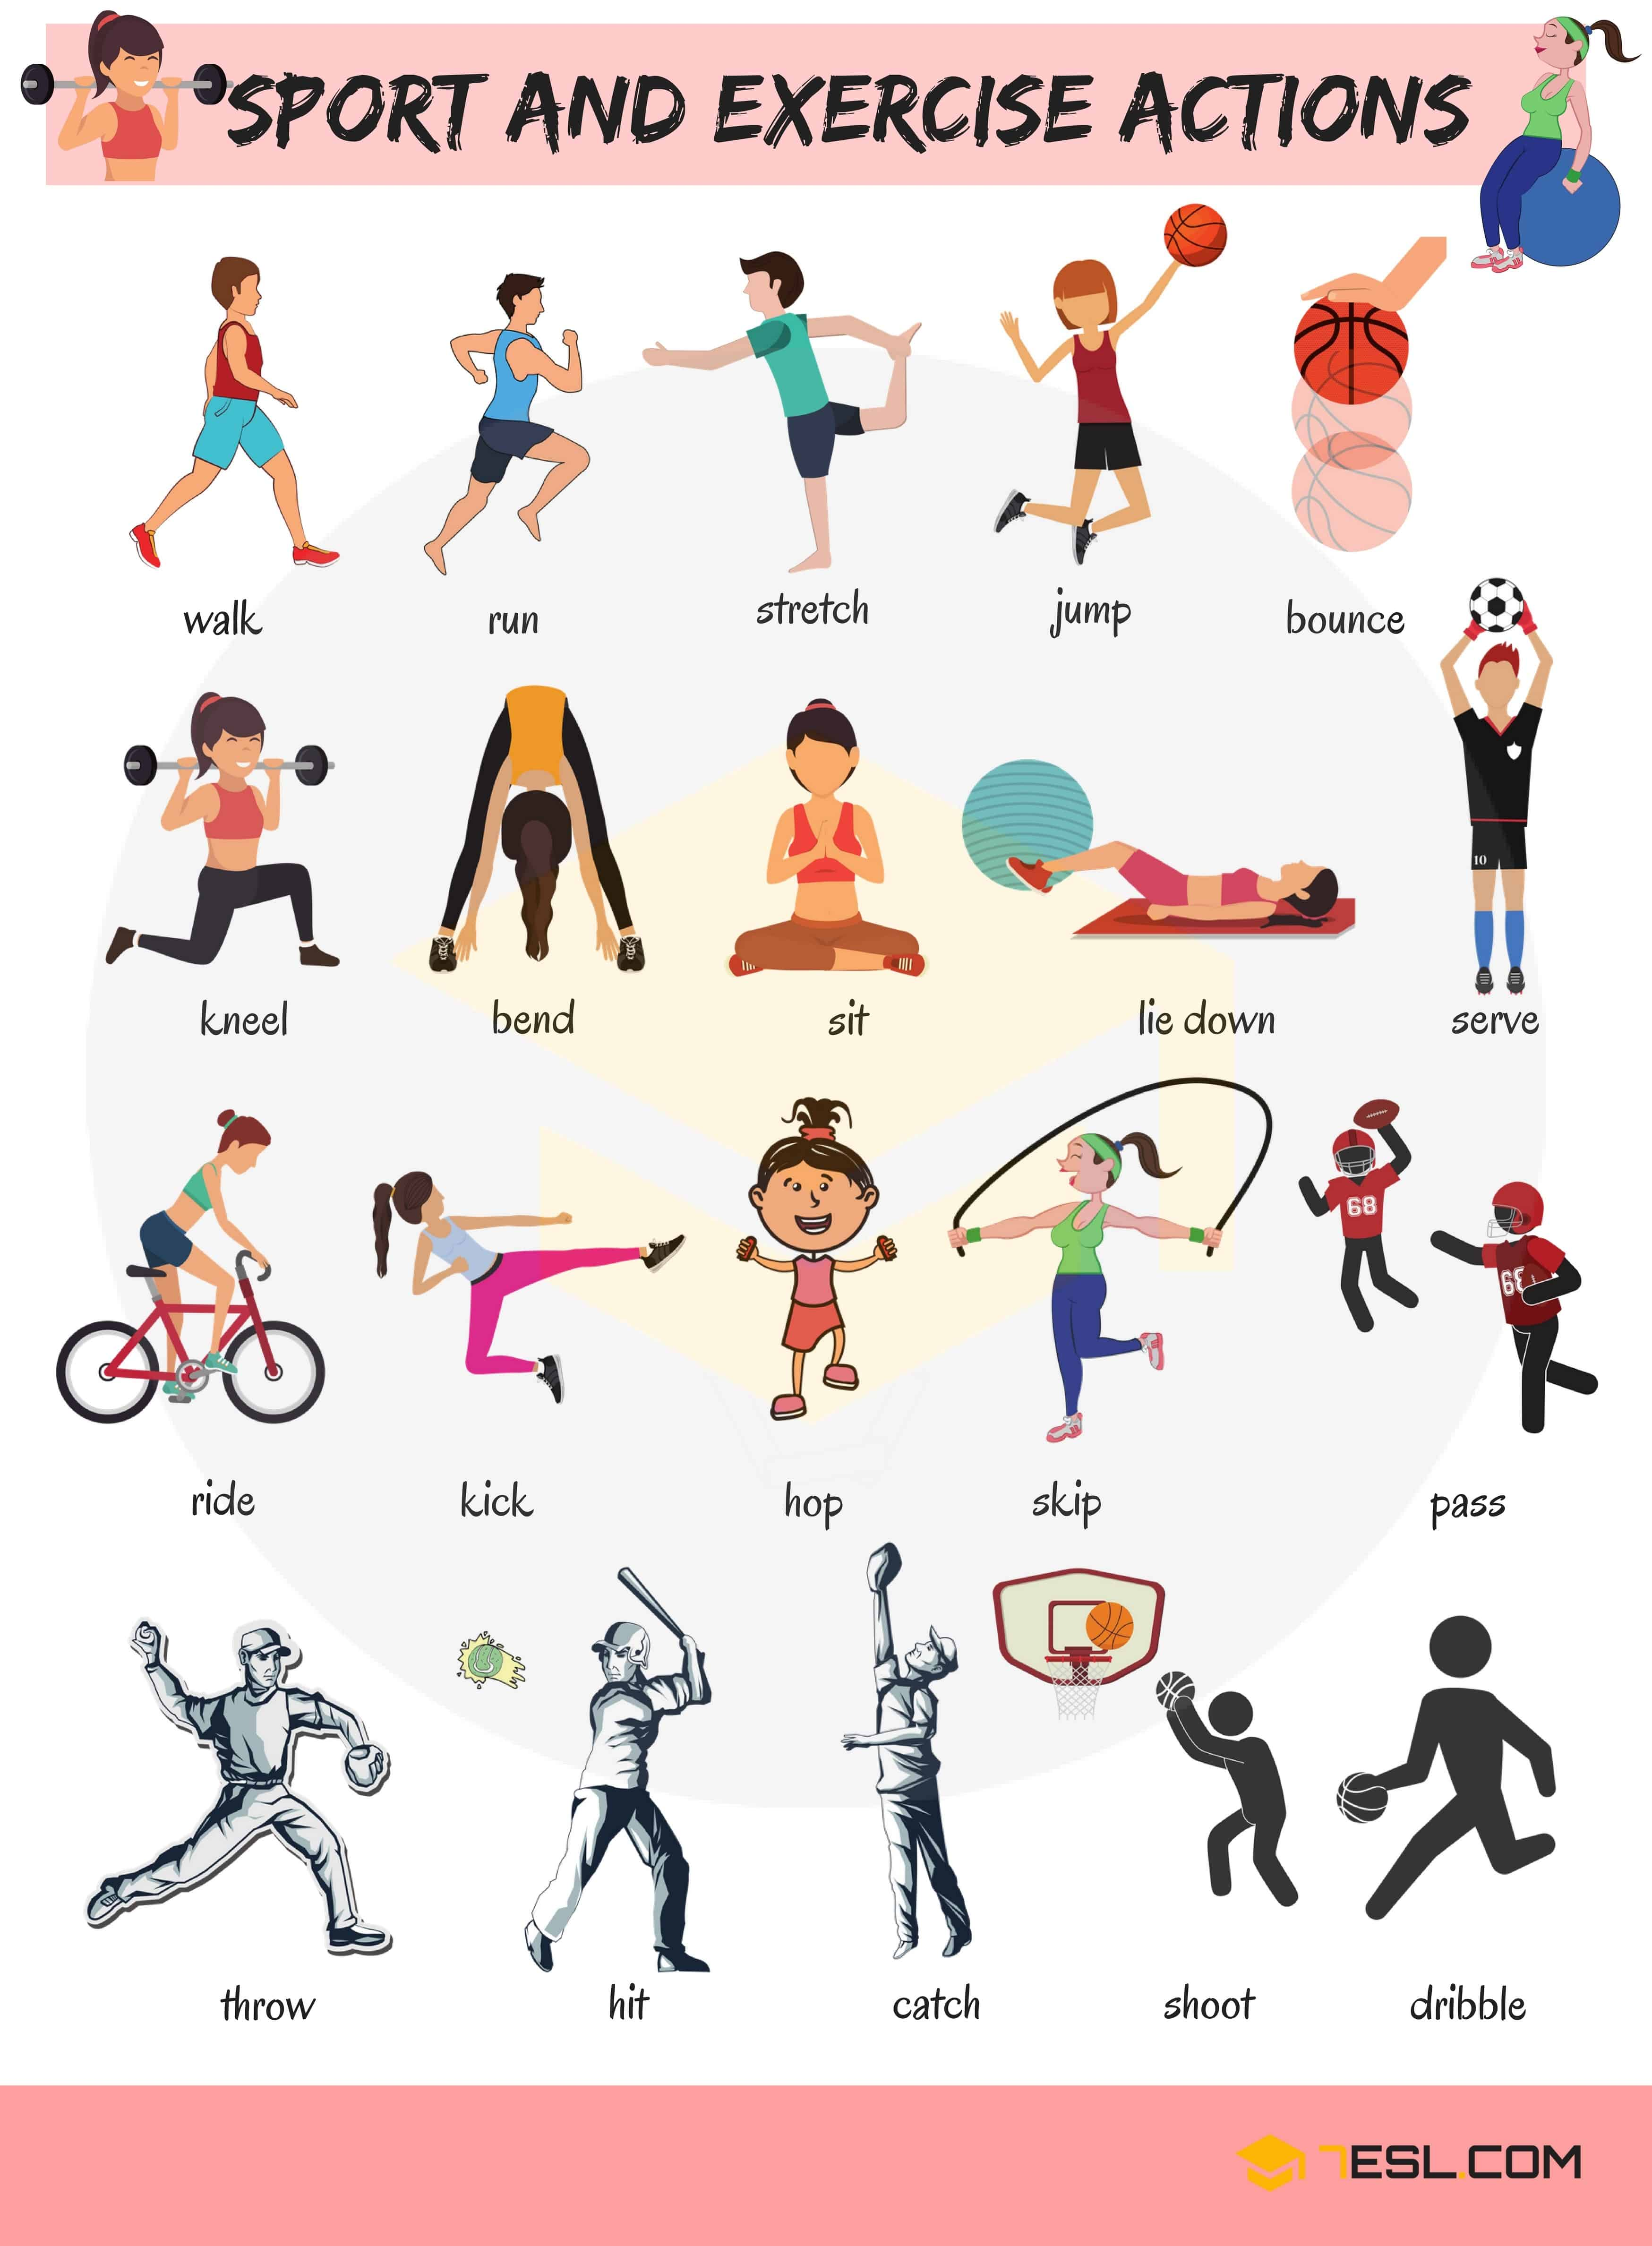 Sport and Exercise Verbs Images